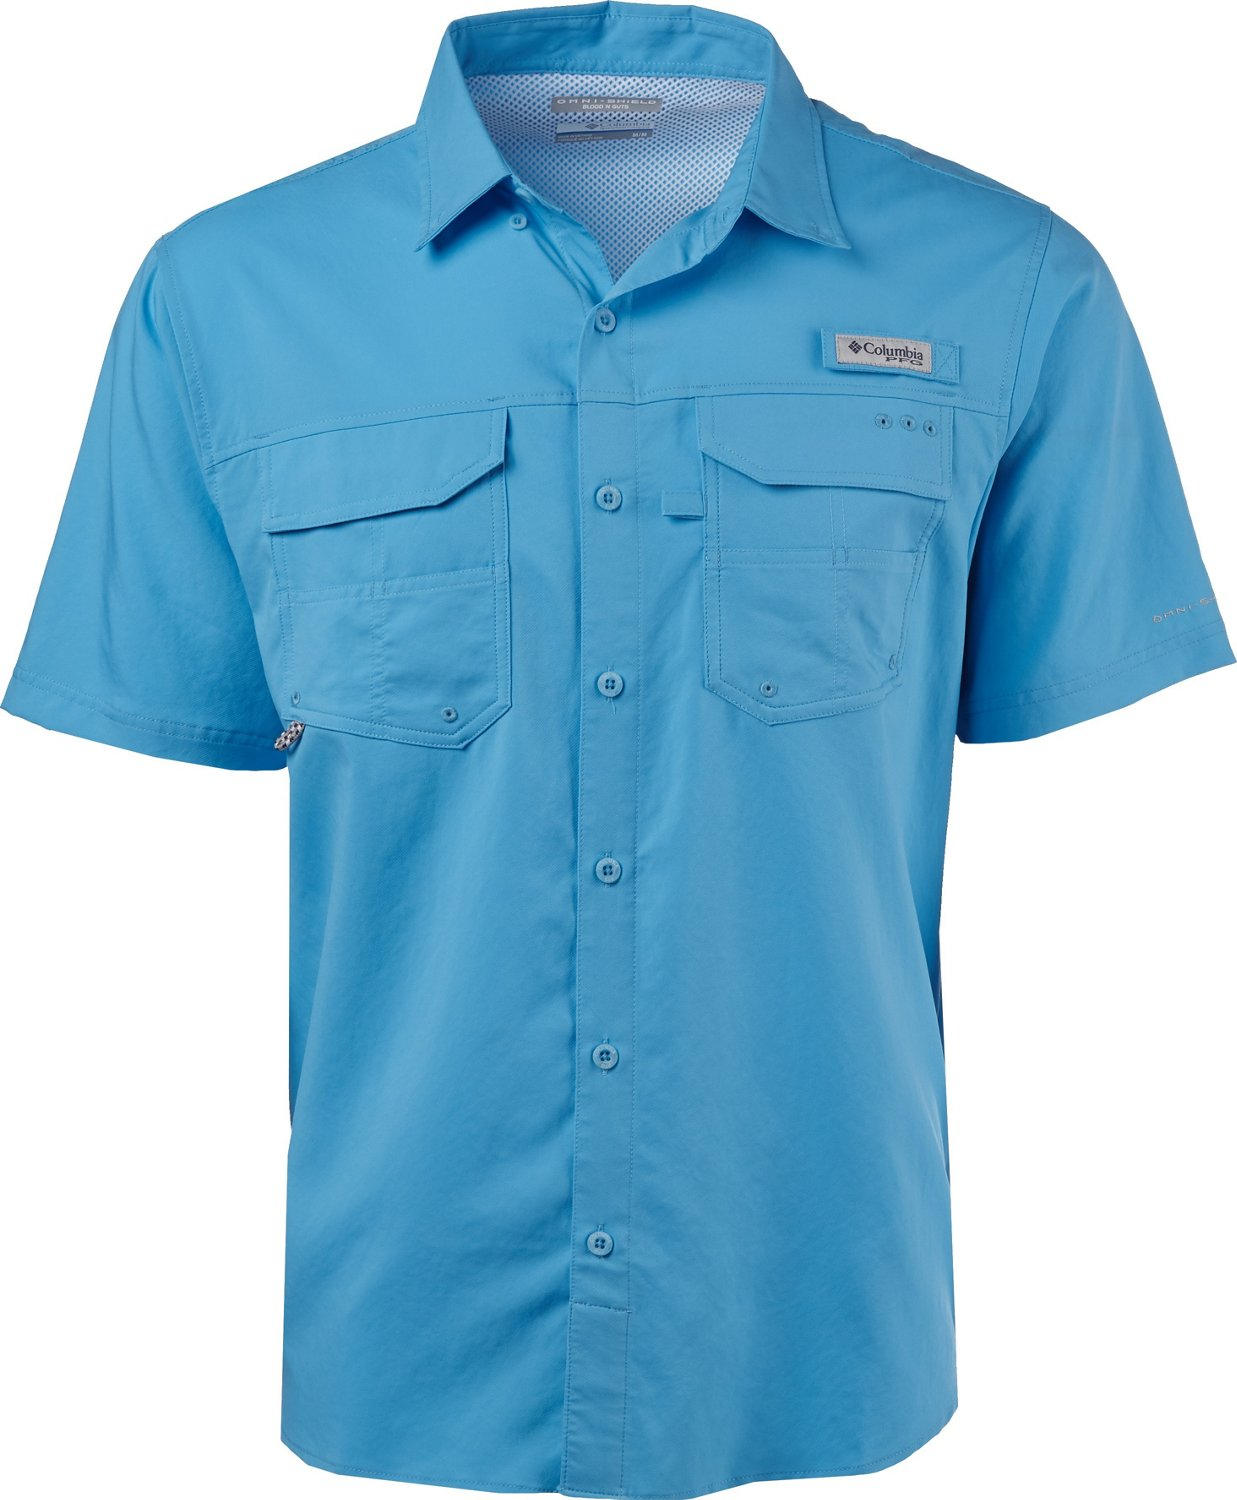 00e6be6a9 Display product reviews for Columbia Sportswear Men's Blood and Guts III  Short Sleeve Woven Fishing Shirt